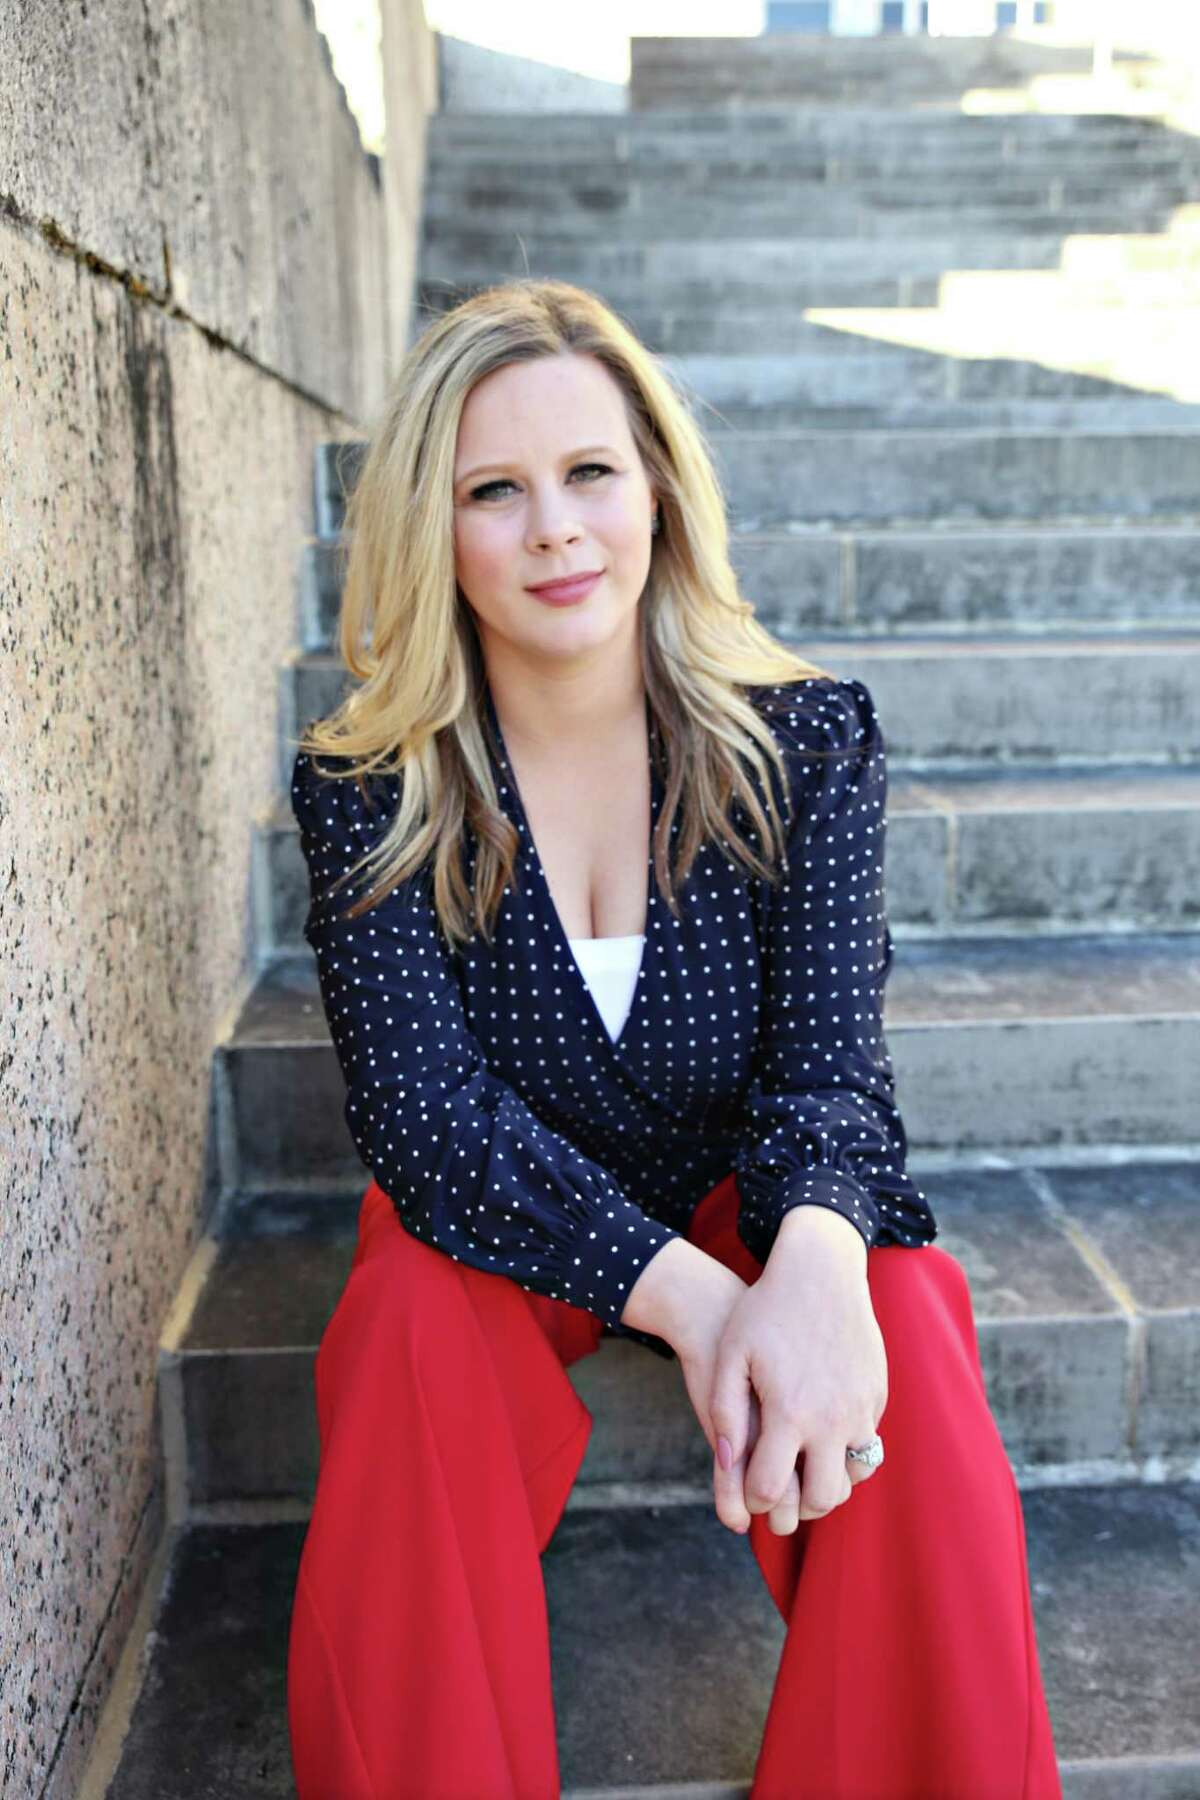 Sarah Linder has won the GOP primary for Brazoria County Justice of the Peace Precinct 4, Place 1, defeating Pete Gamboa. The incumbent in the seat, Sharon Fox, is retiring. Representing the Democratic Party in the November election will be F.J. Jones.